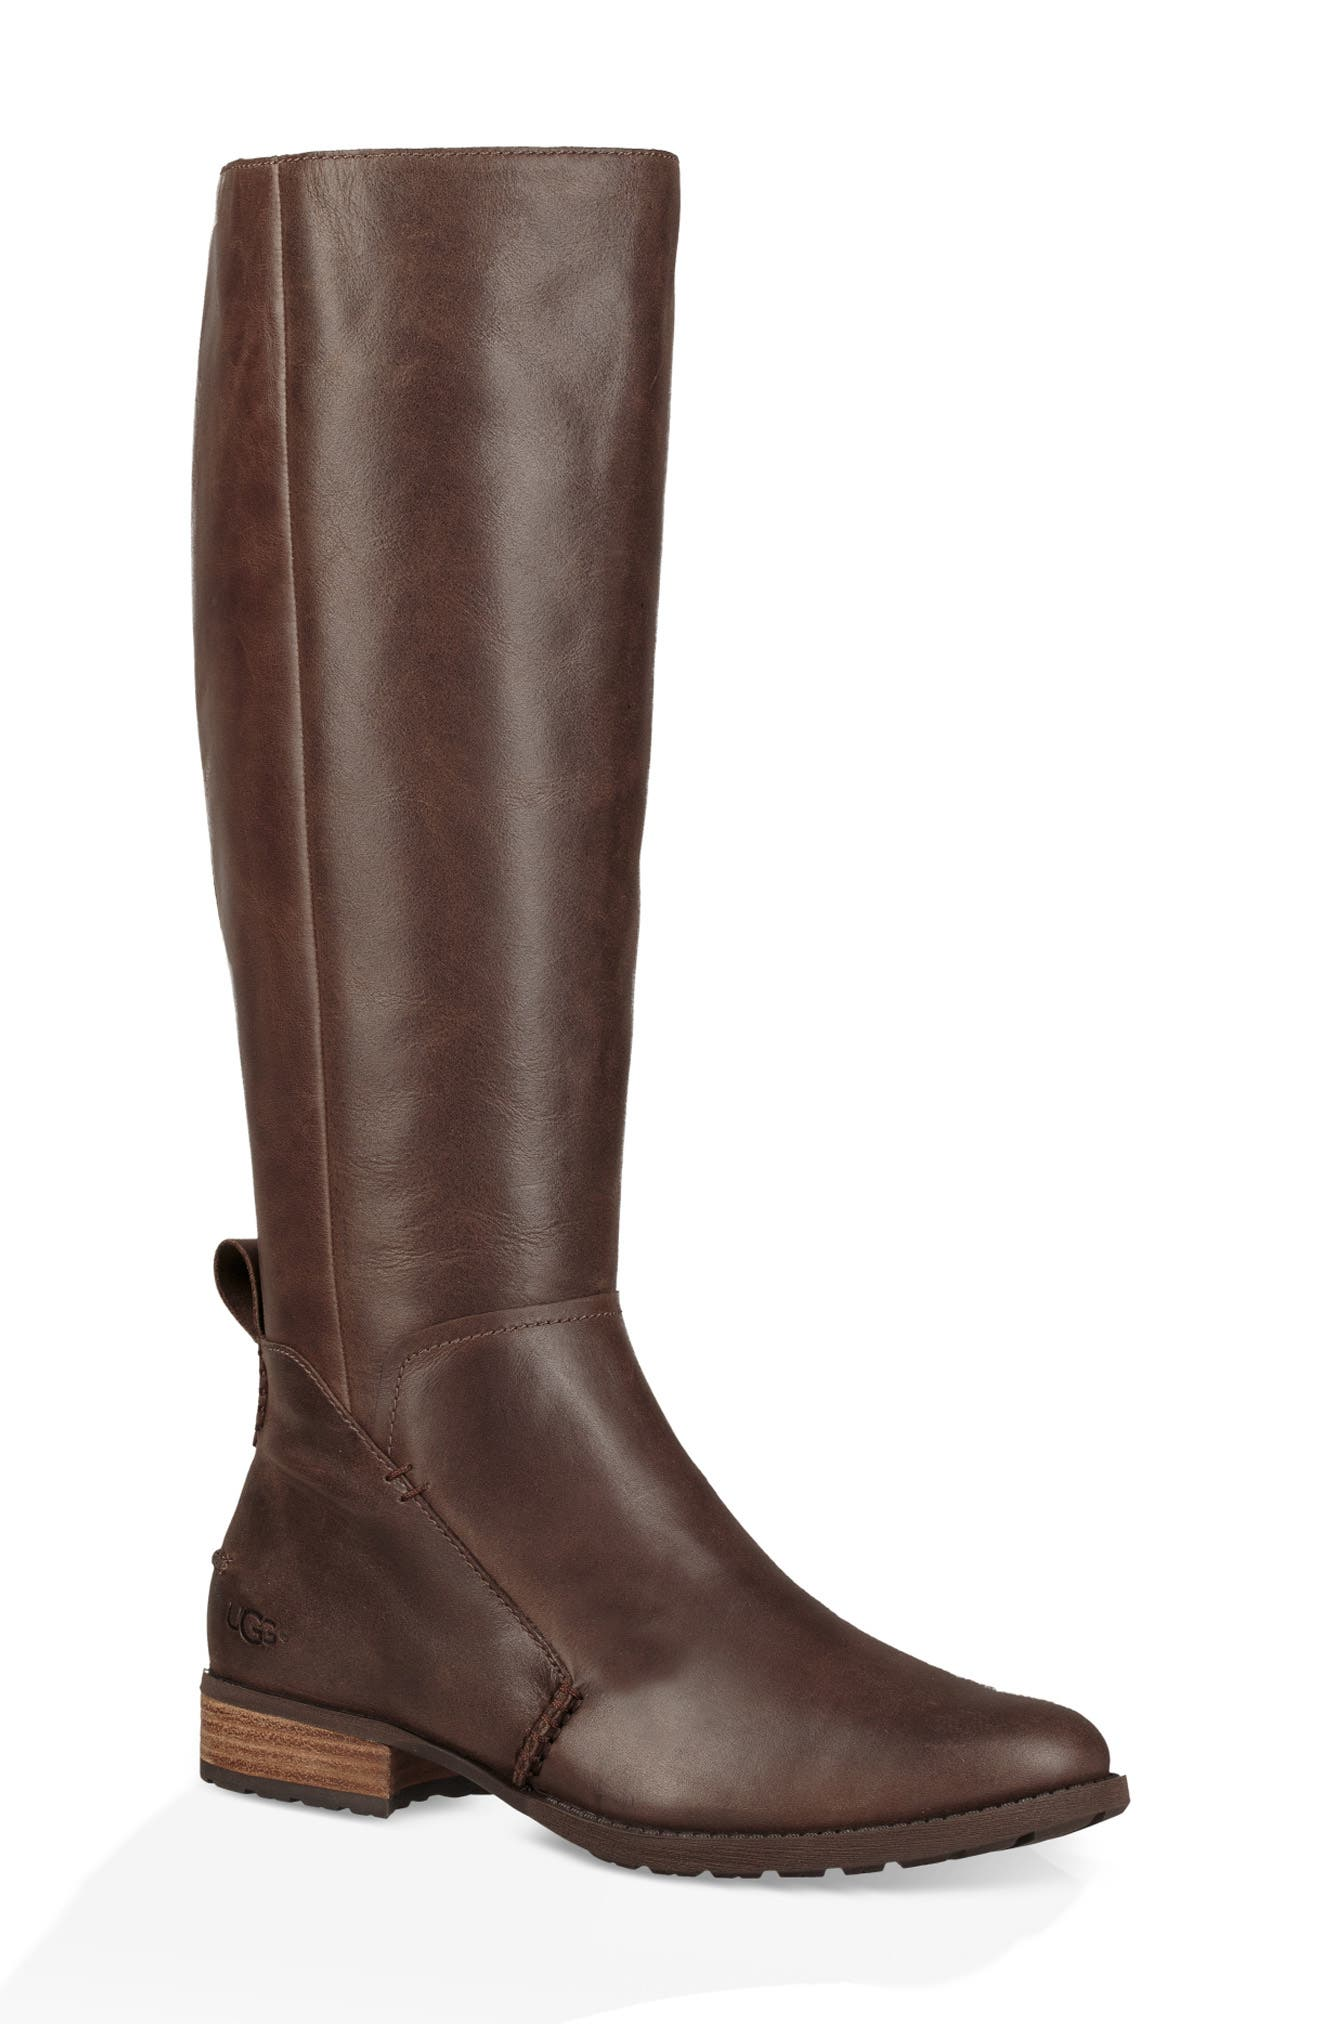 Leigh Knee High Riding Boot,                             Main thumbnail 1, color,                             DARK BROWN LEATHER